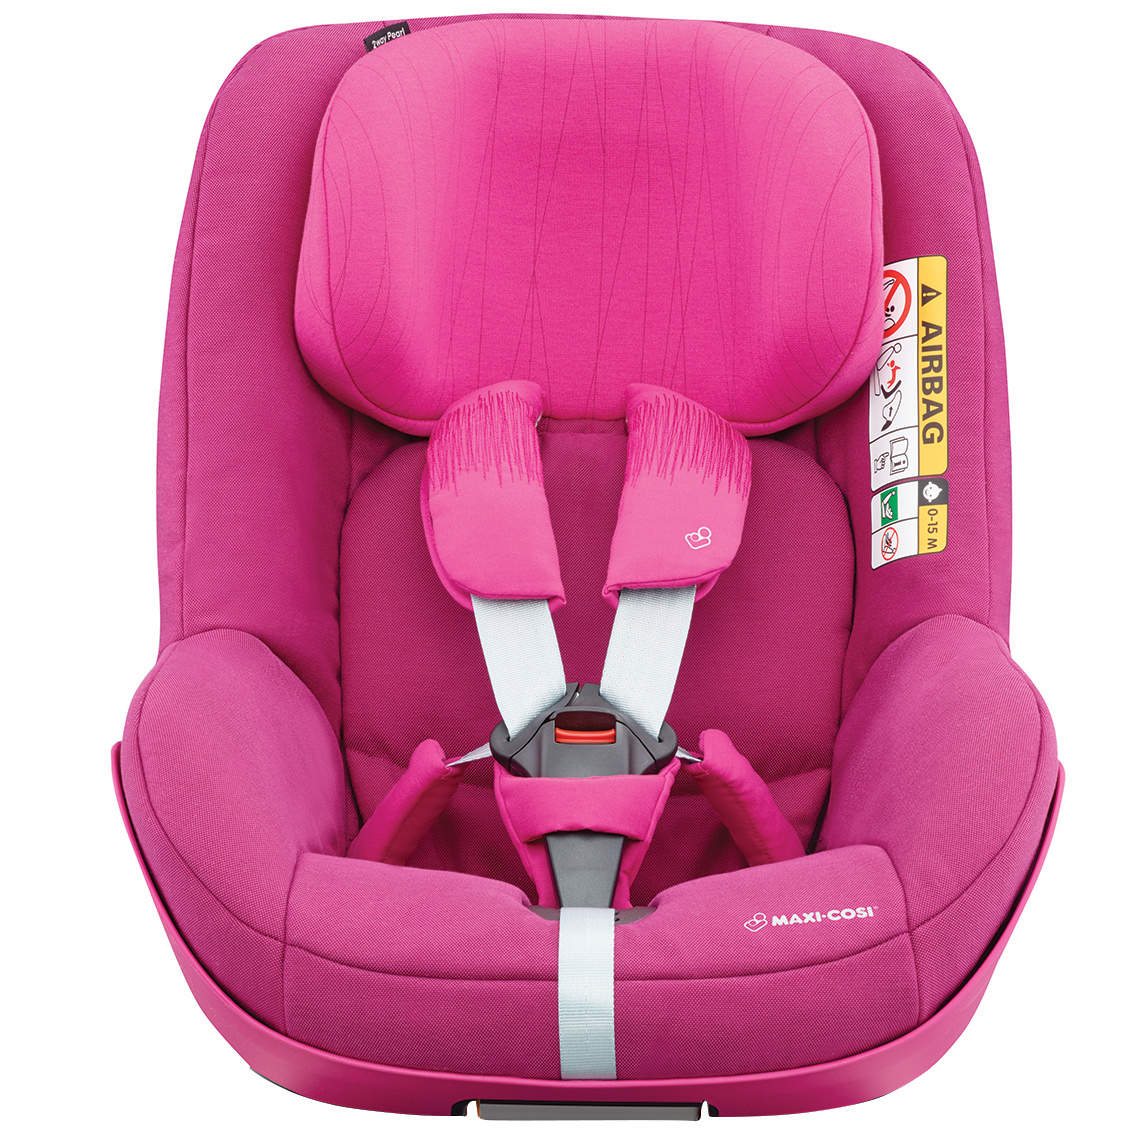 Maxi Cosi Child Car Seat 2Way Pearl Frequency Pink 2018